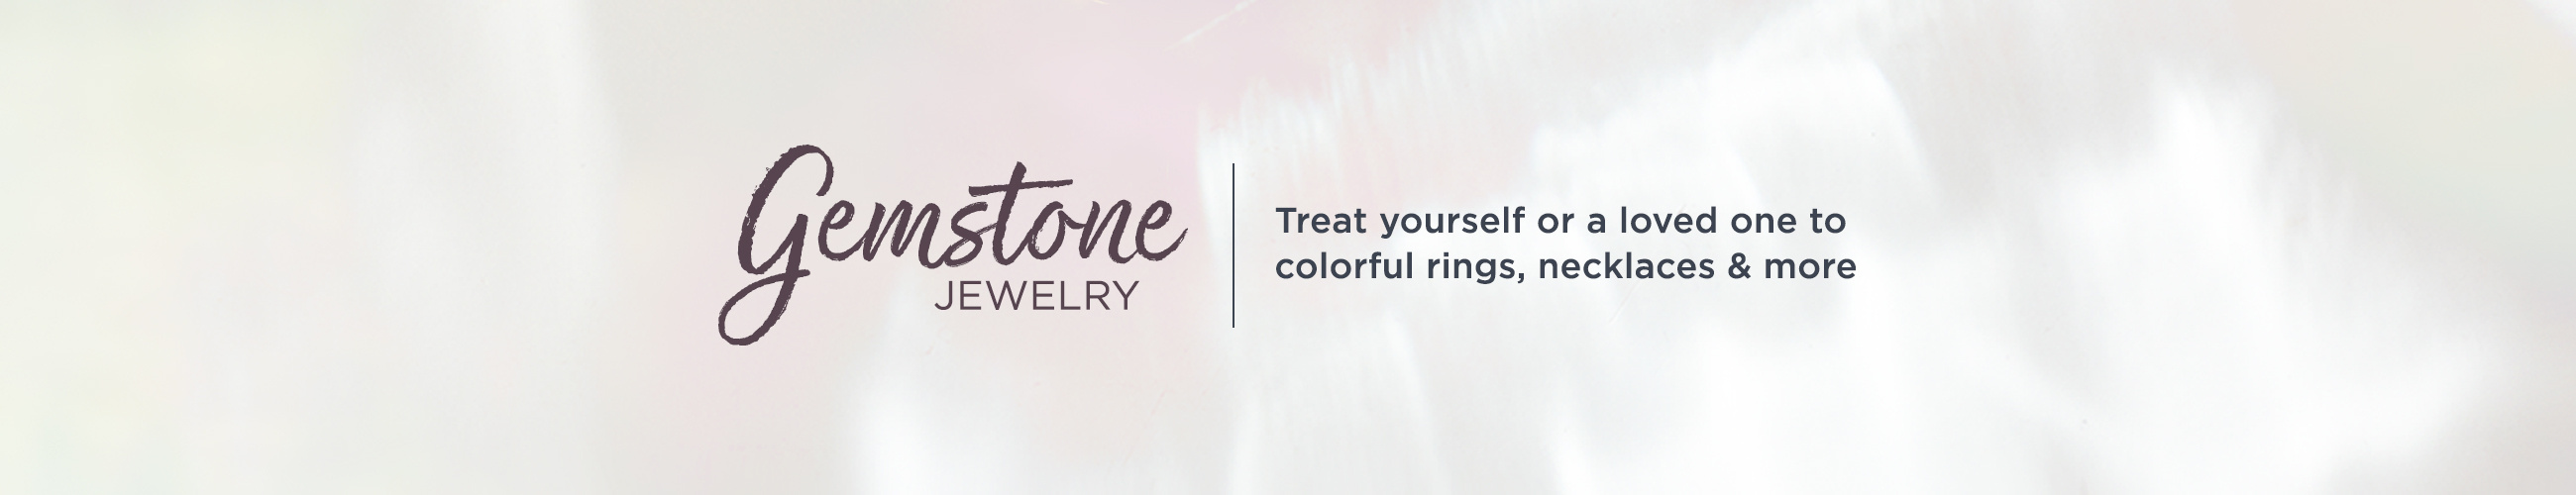 Gemstone Jewelry.   Treat yourself or a loved one to colorful rings, necklaces & more